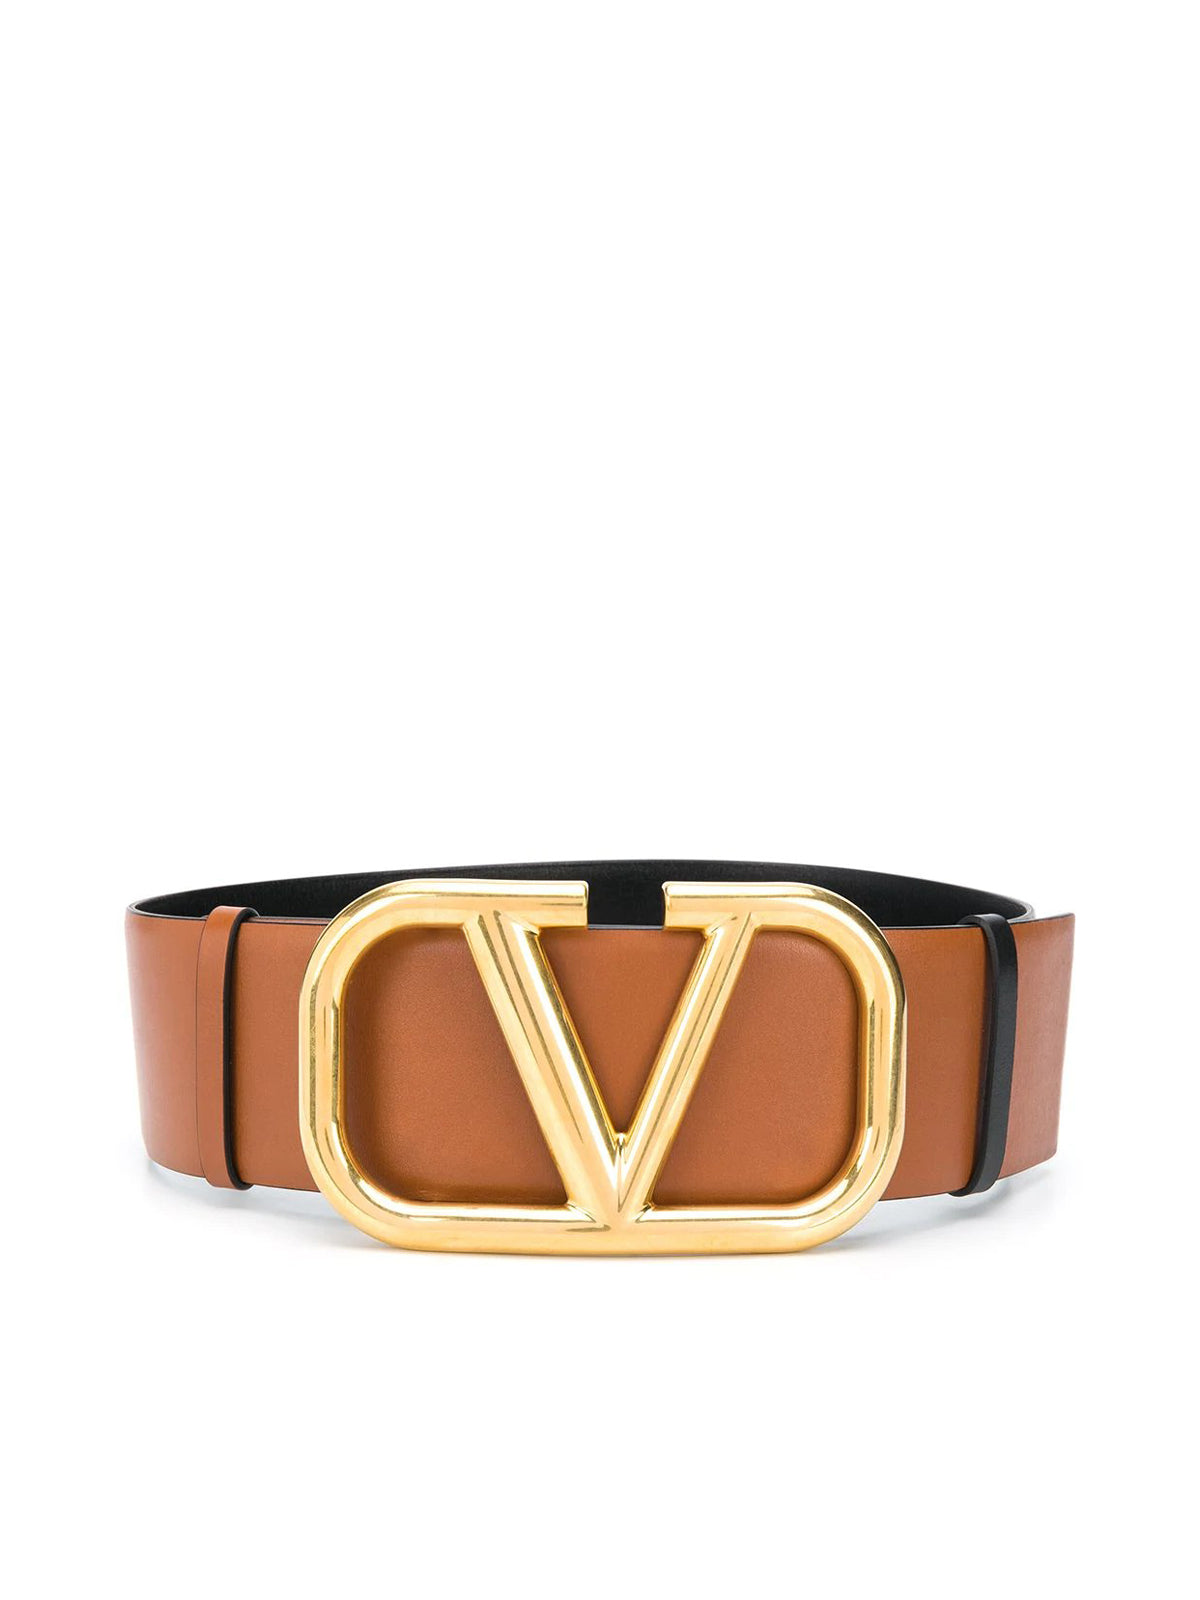 VLOGO buckle belt